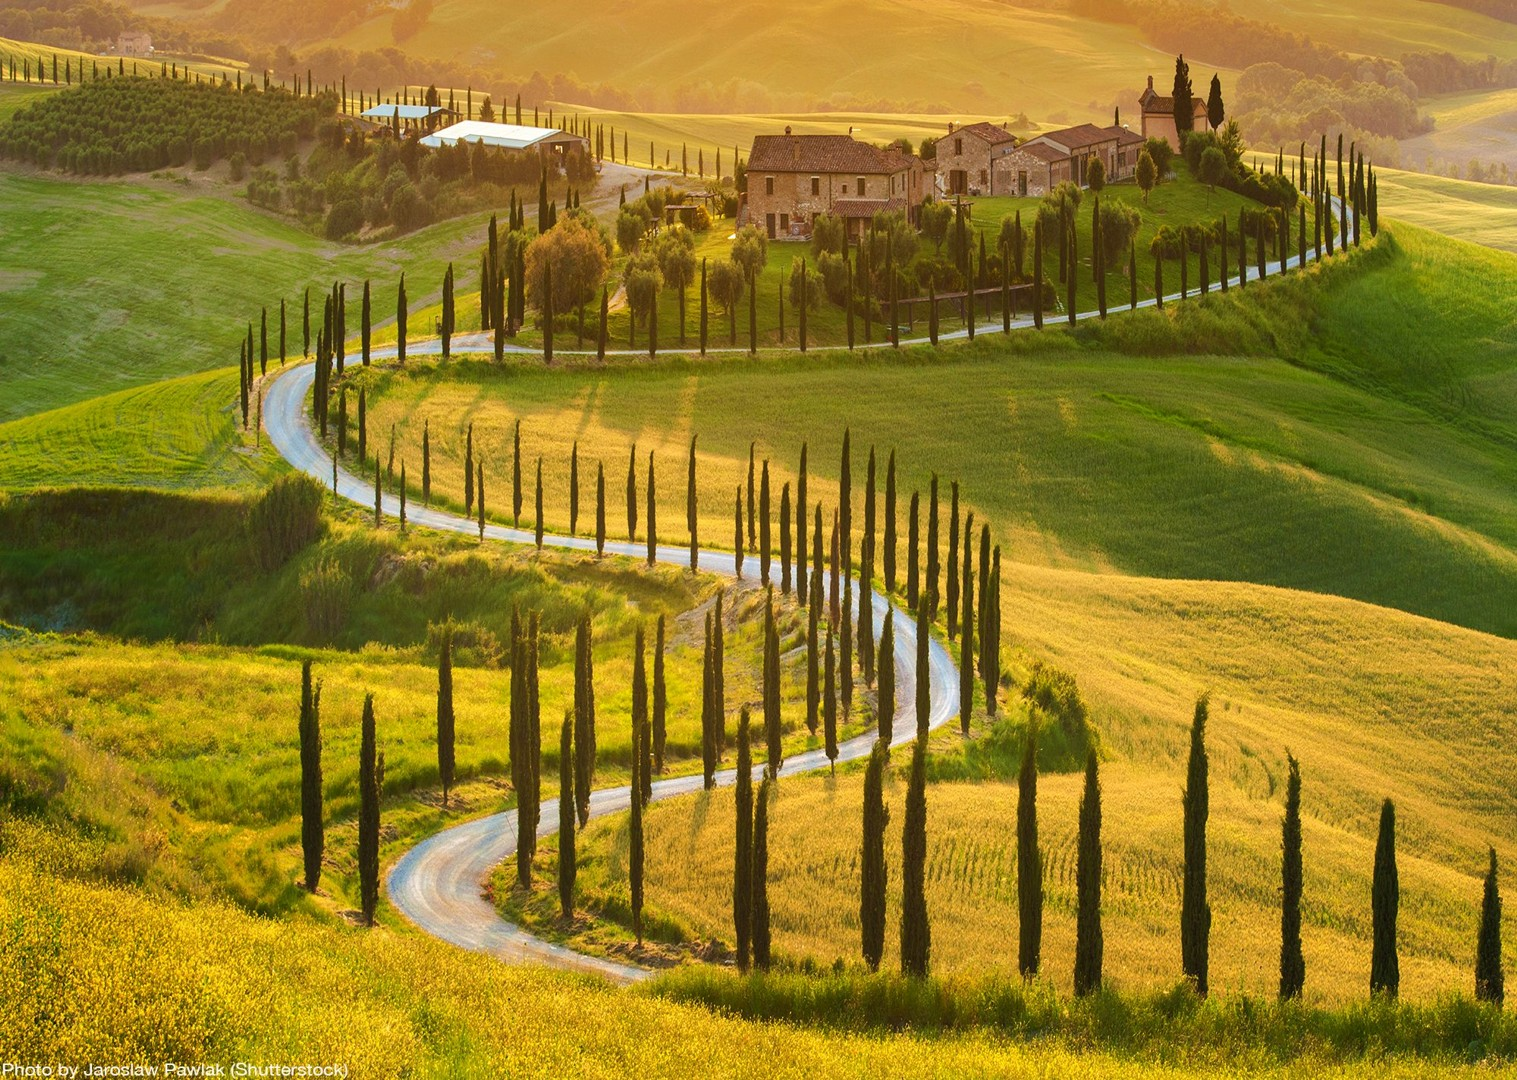 cypress-snakes-tuscany-leisure-bike-tour-guided.jpg - Italy - Tuscany - Giro della Toscana - Self-Guided Road Cycling Holiday - Italia Road Cycling